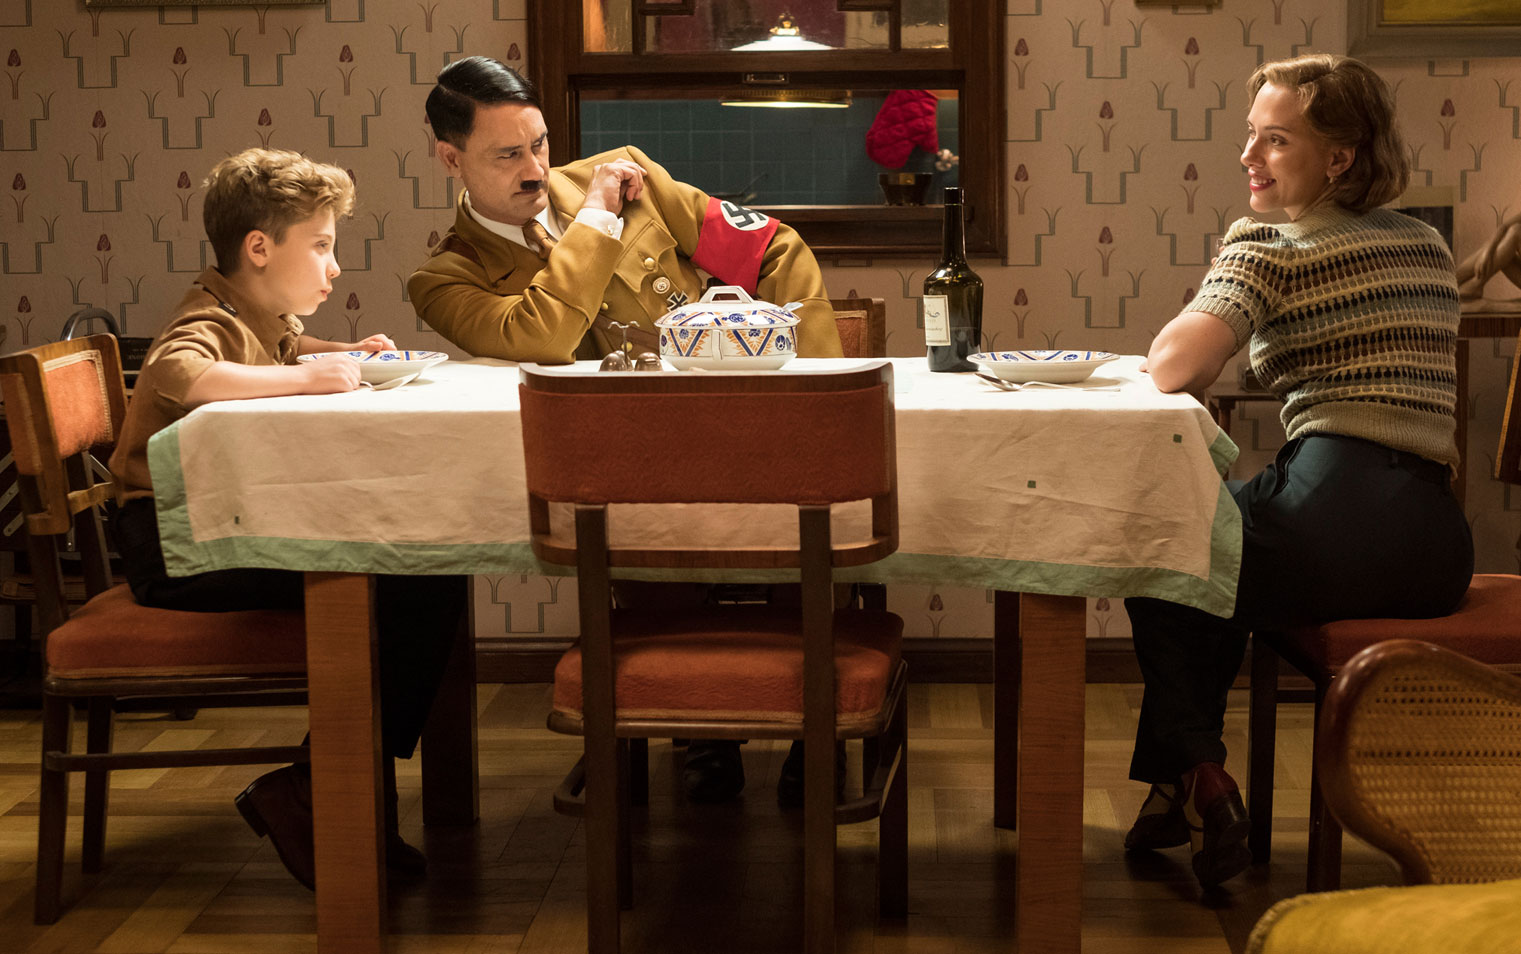 Film still of Jojo Rabbit dinner scene featuring Roman Griffin Davis,  Taika Waititi, and Scarlett Johansson